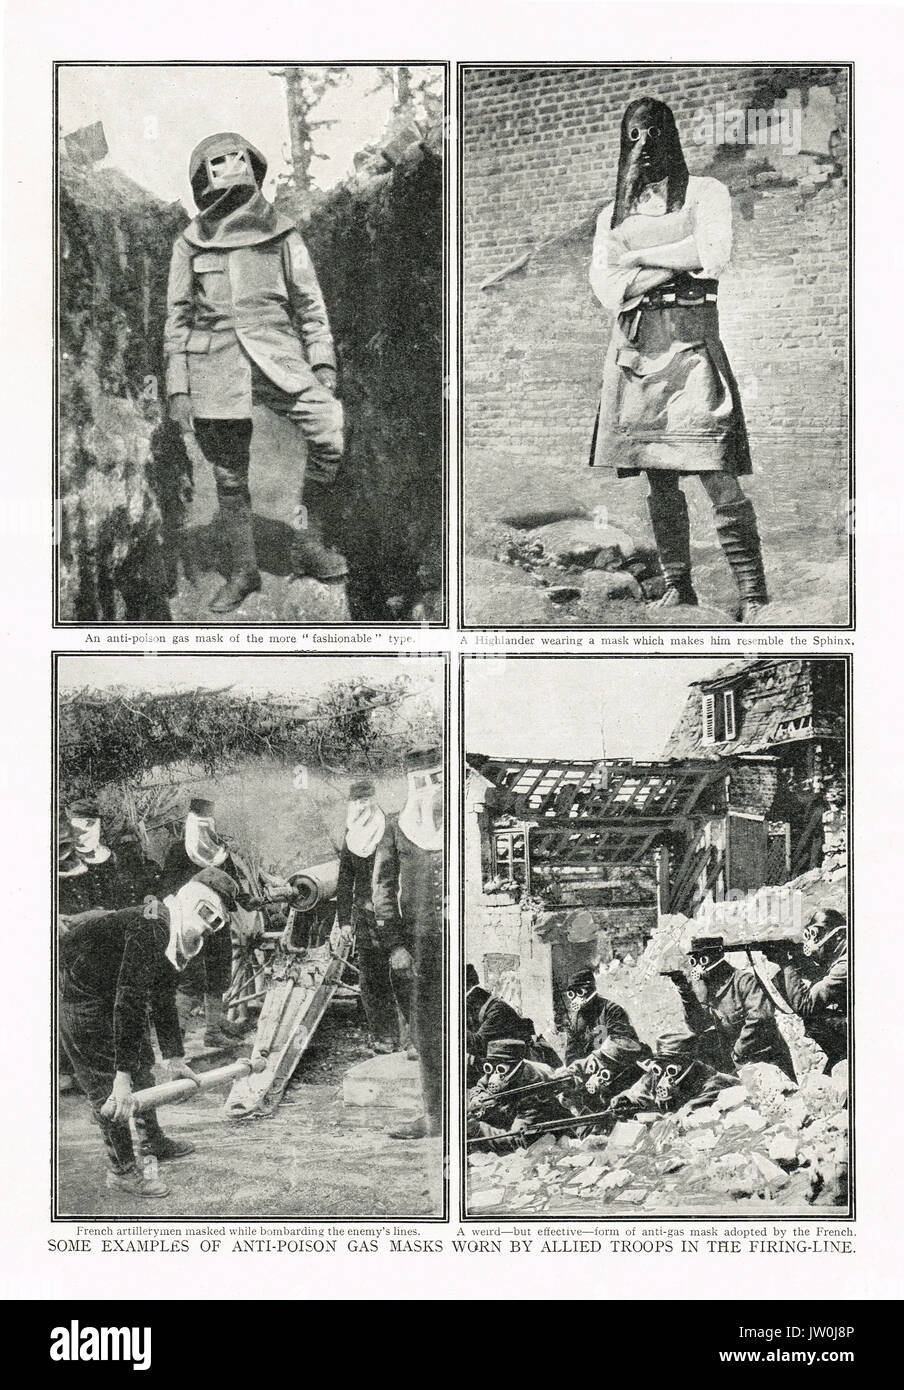 Examples of world war 1 gas masks in use - Stock Image